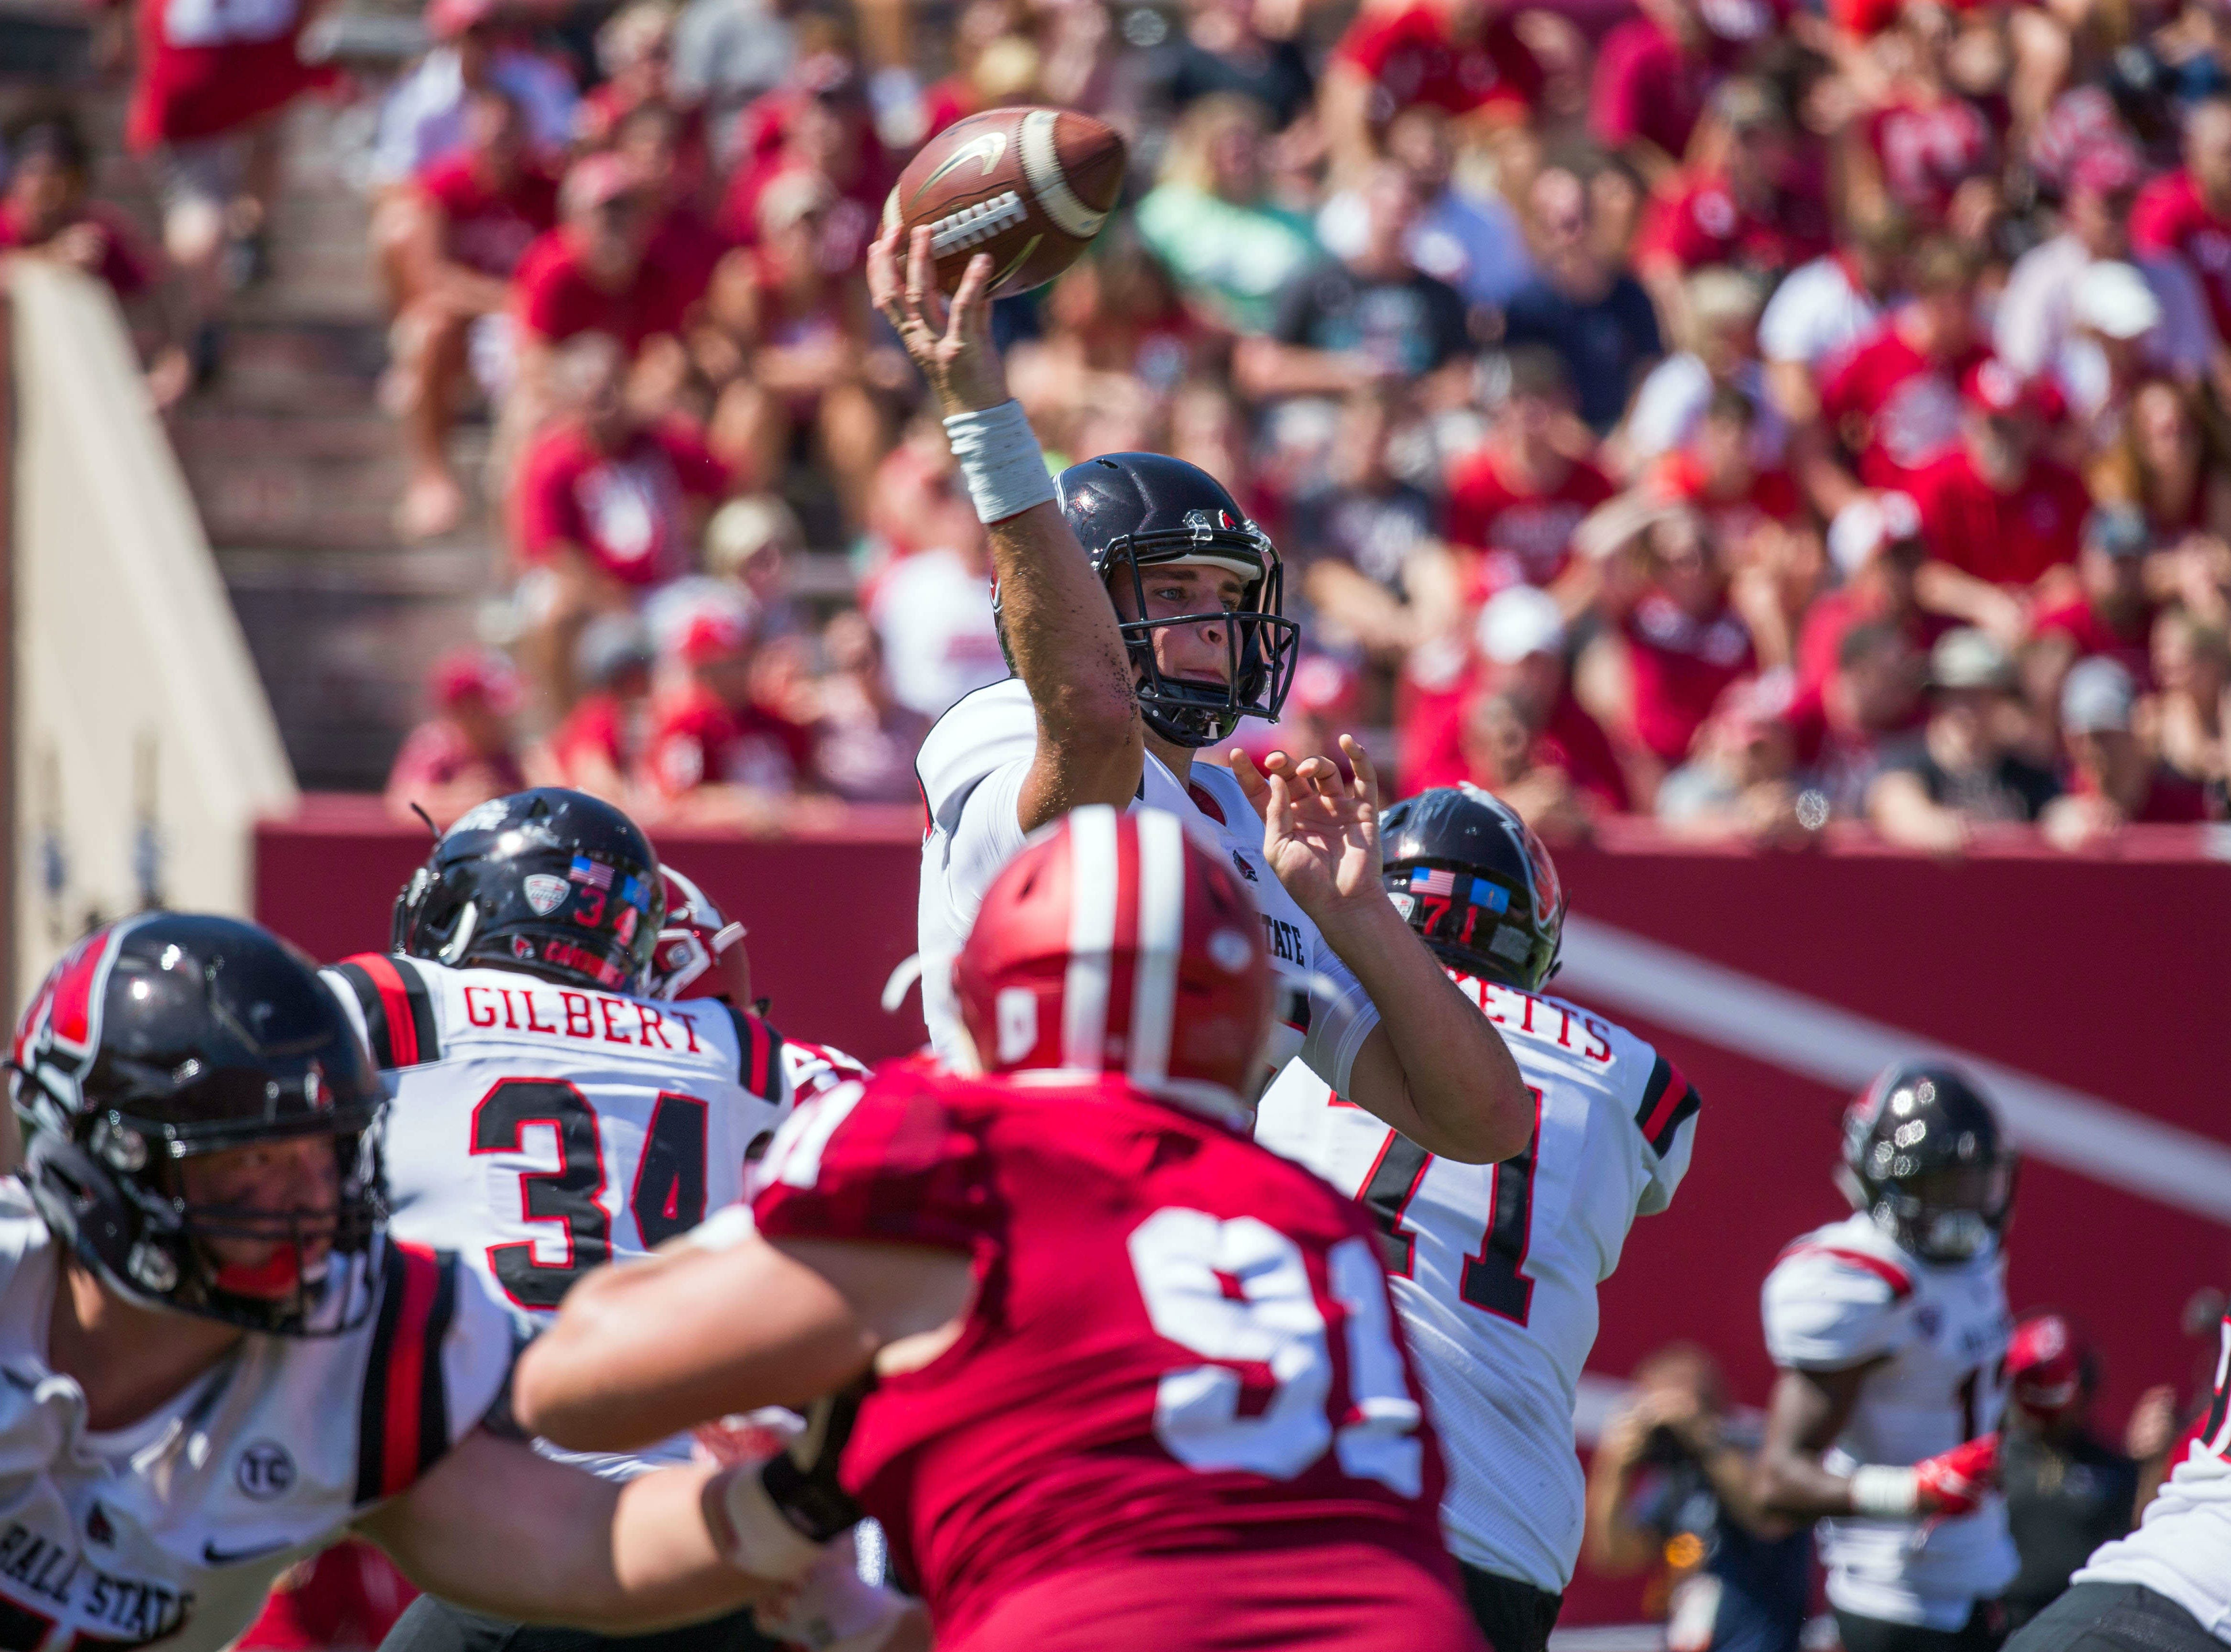 Ball State Cardinals quarterback Riley Neal (15) passes the ball in the second quarter against the Indiana Hoosiers at Memorial Stadium .